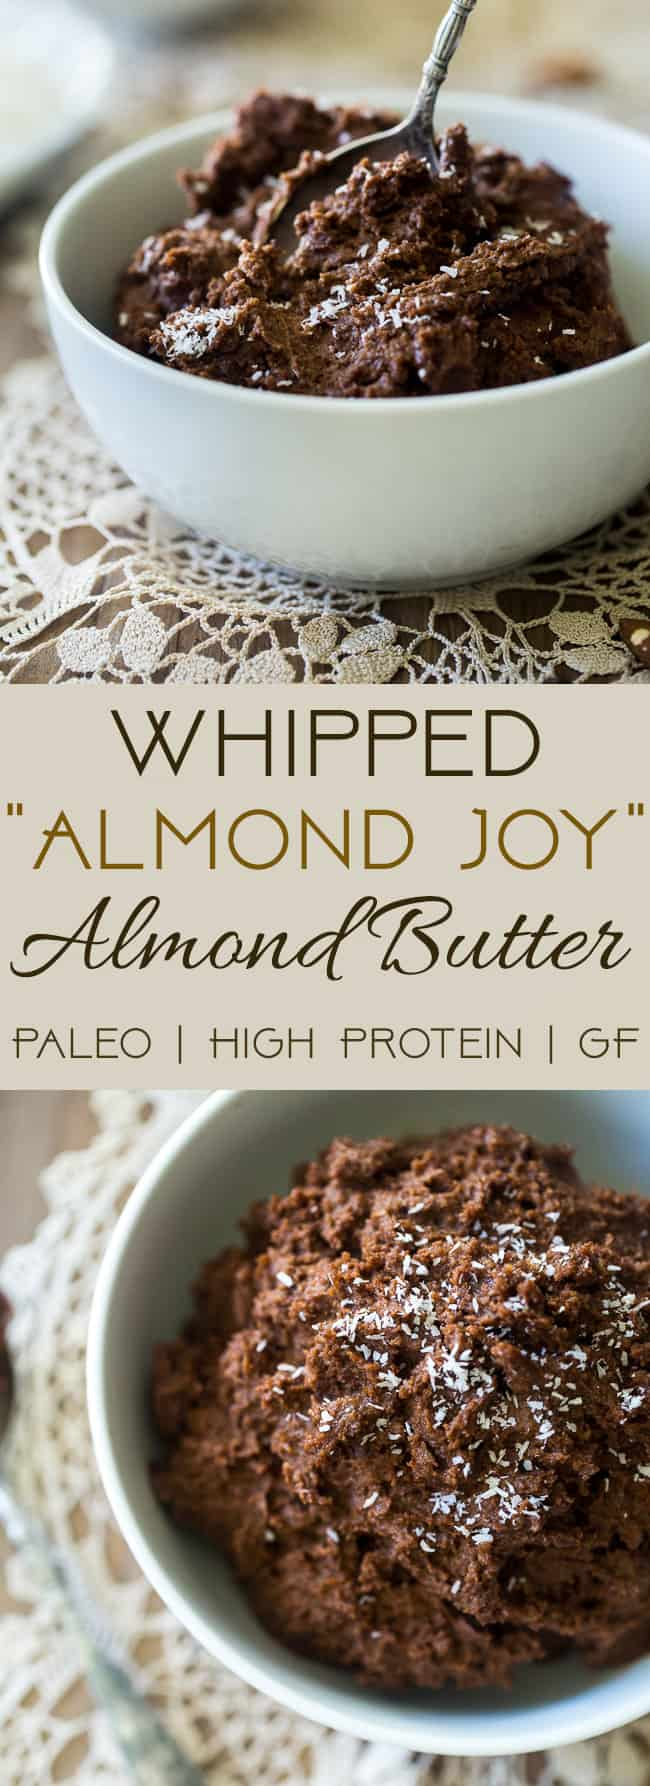 Chocolate Coconut Whipped Homemade Almond Butter -  loaded with chocolate, coconut and protein powder, and then whipped to airy, light perfection! Easy, Paleo-friendly and SO addicting! | Foodfaithfitness.com | @FoodFaithFit | Healthy homemade almond butter. almond butter recipe. paleo homemade almond butter. best homemade almond butter.